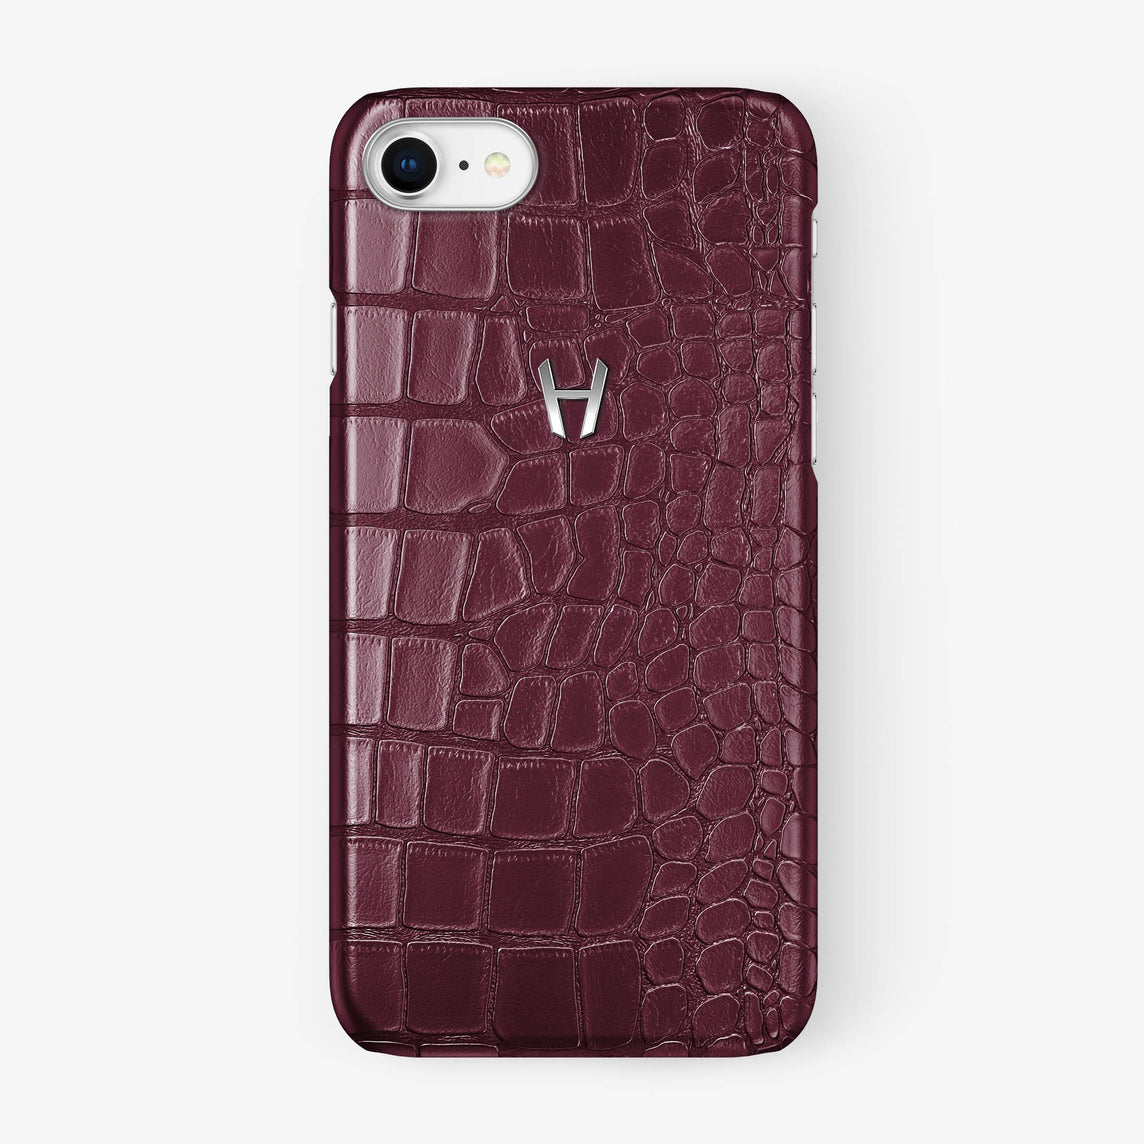 Alligator Case iPhone 7/8 | Burgundy - Stainless Steel - Hadoro